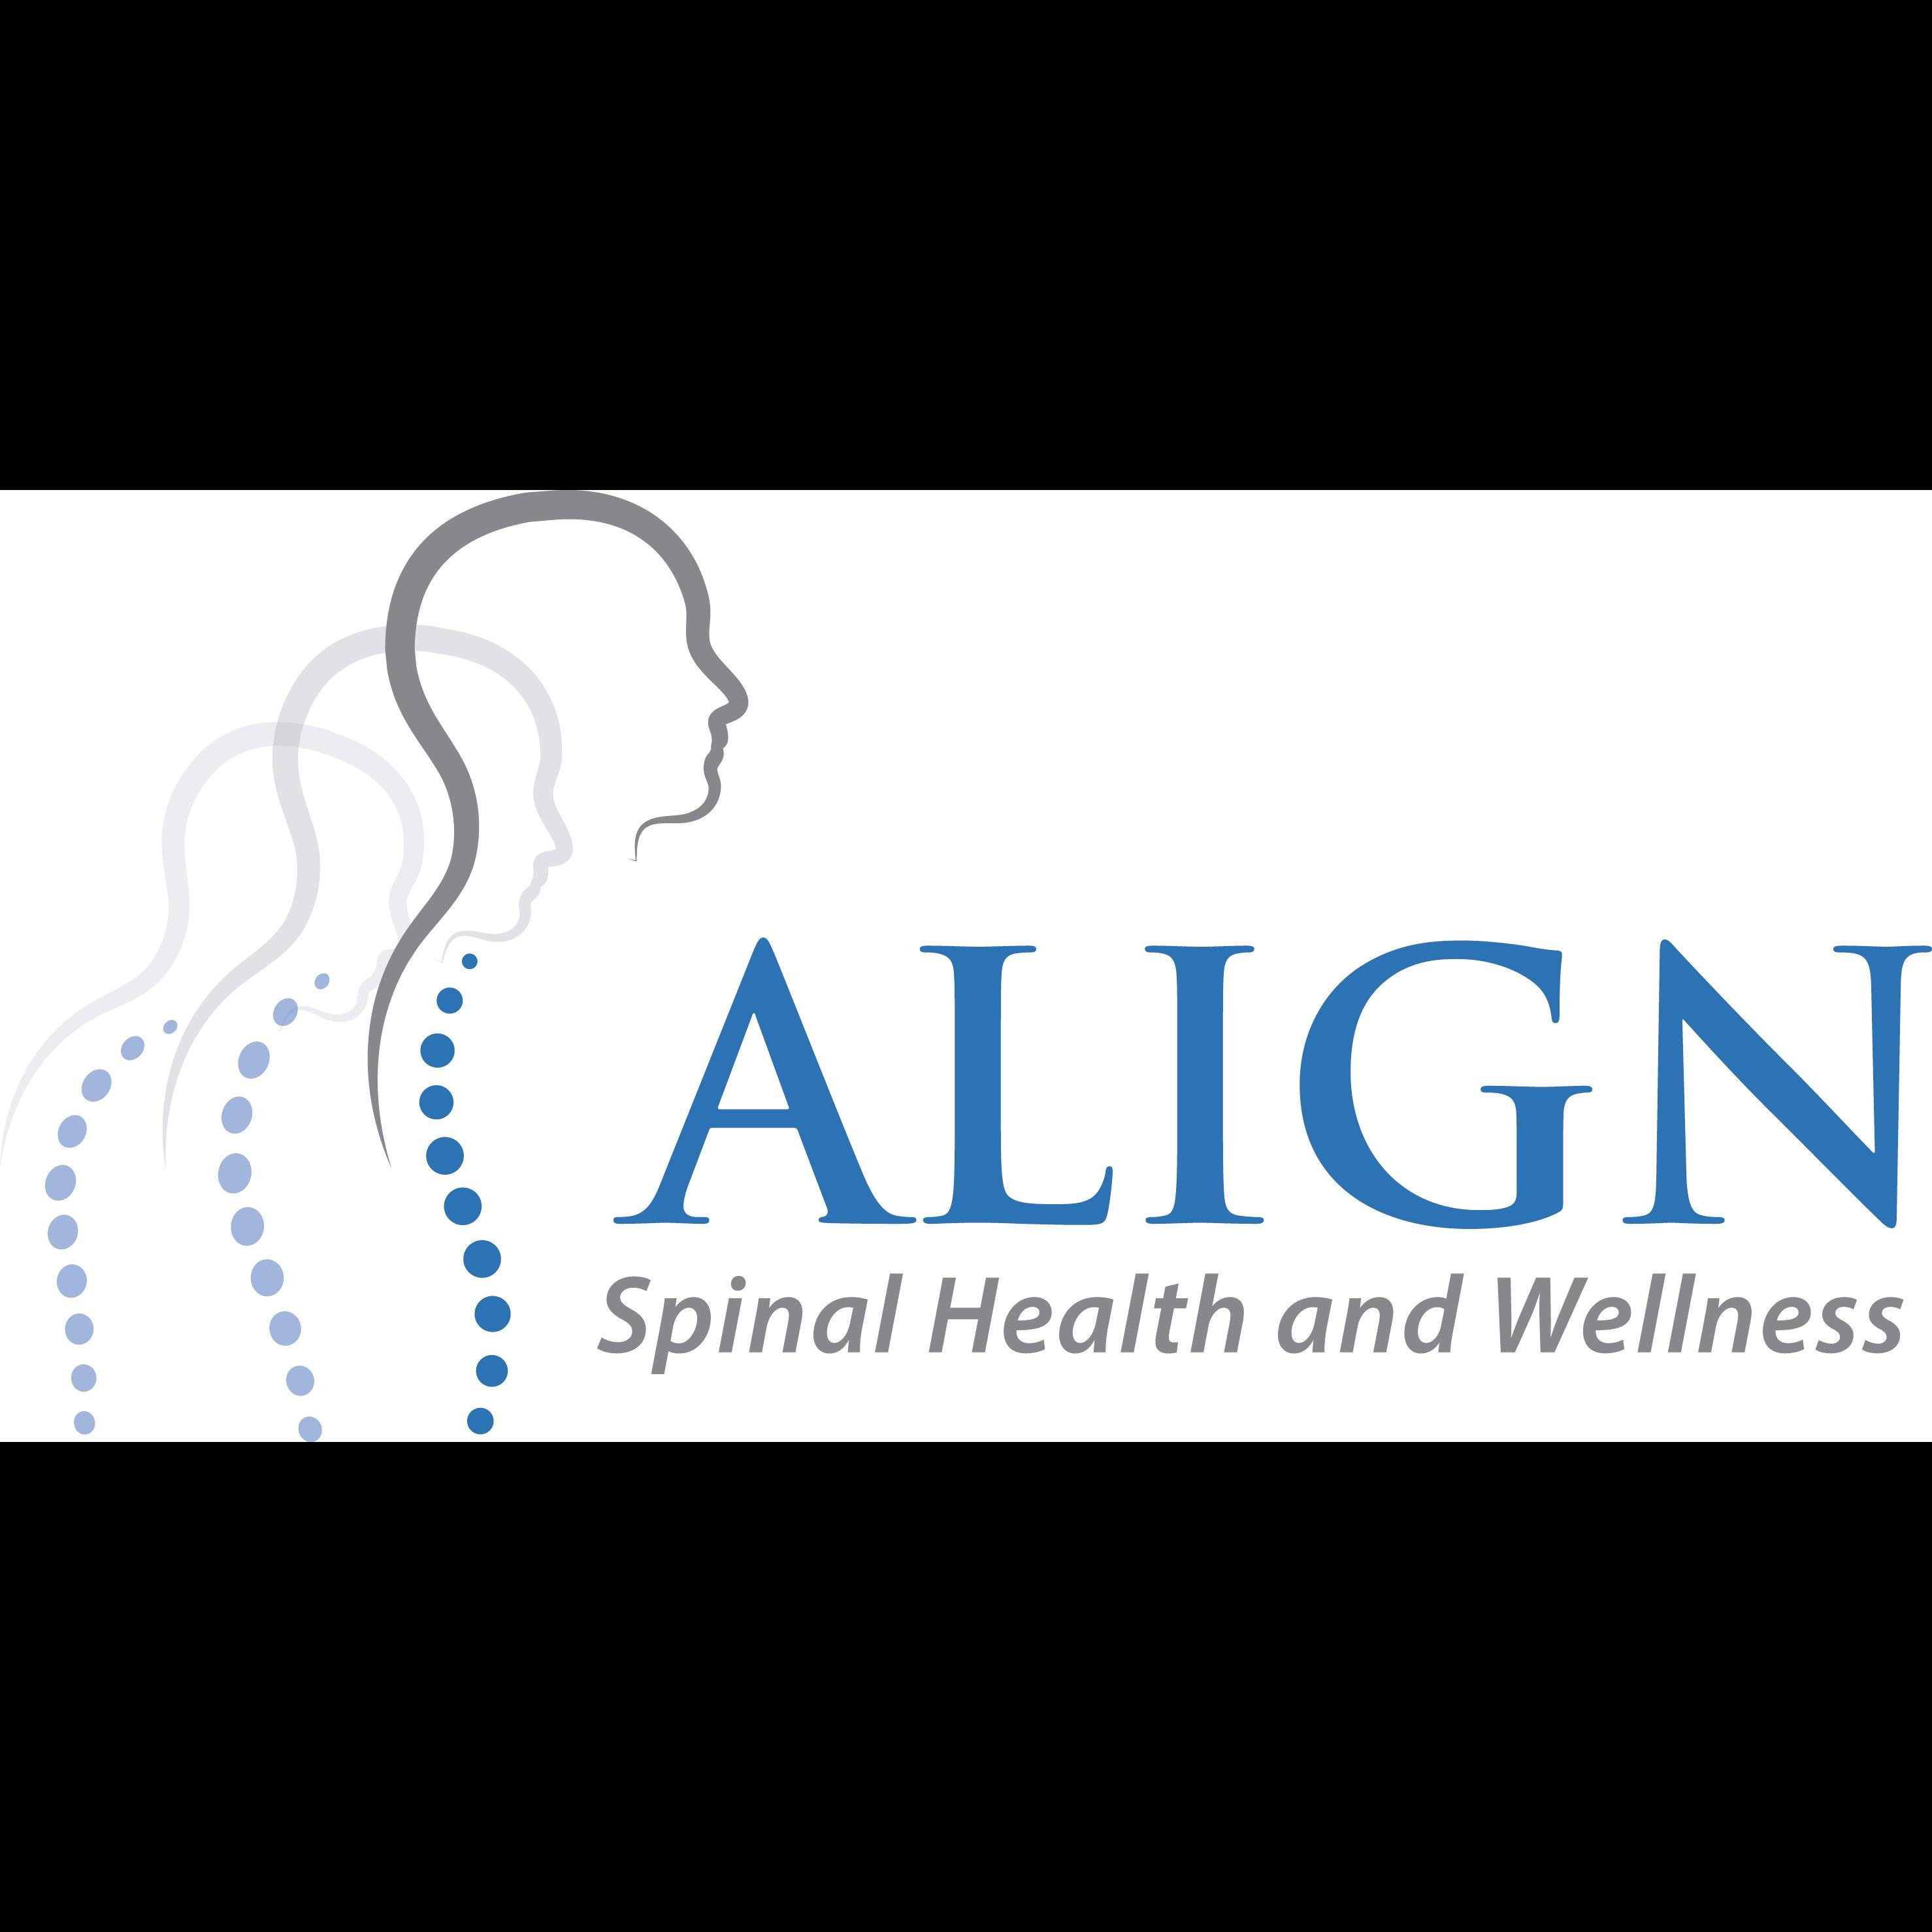 Align Spinal Health and Wellness